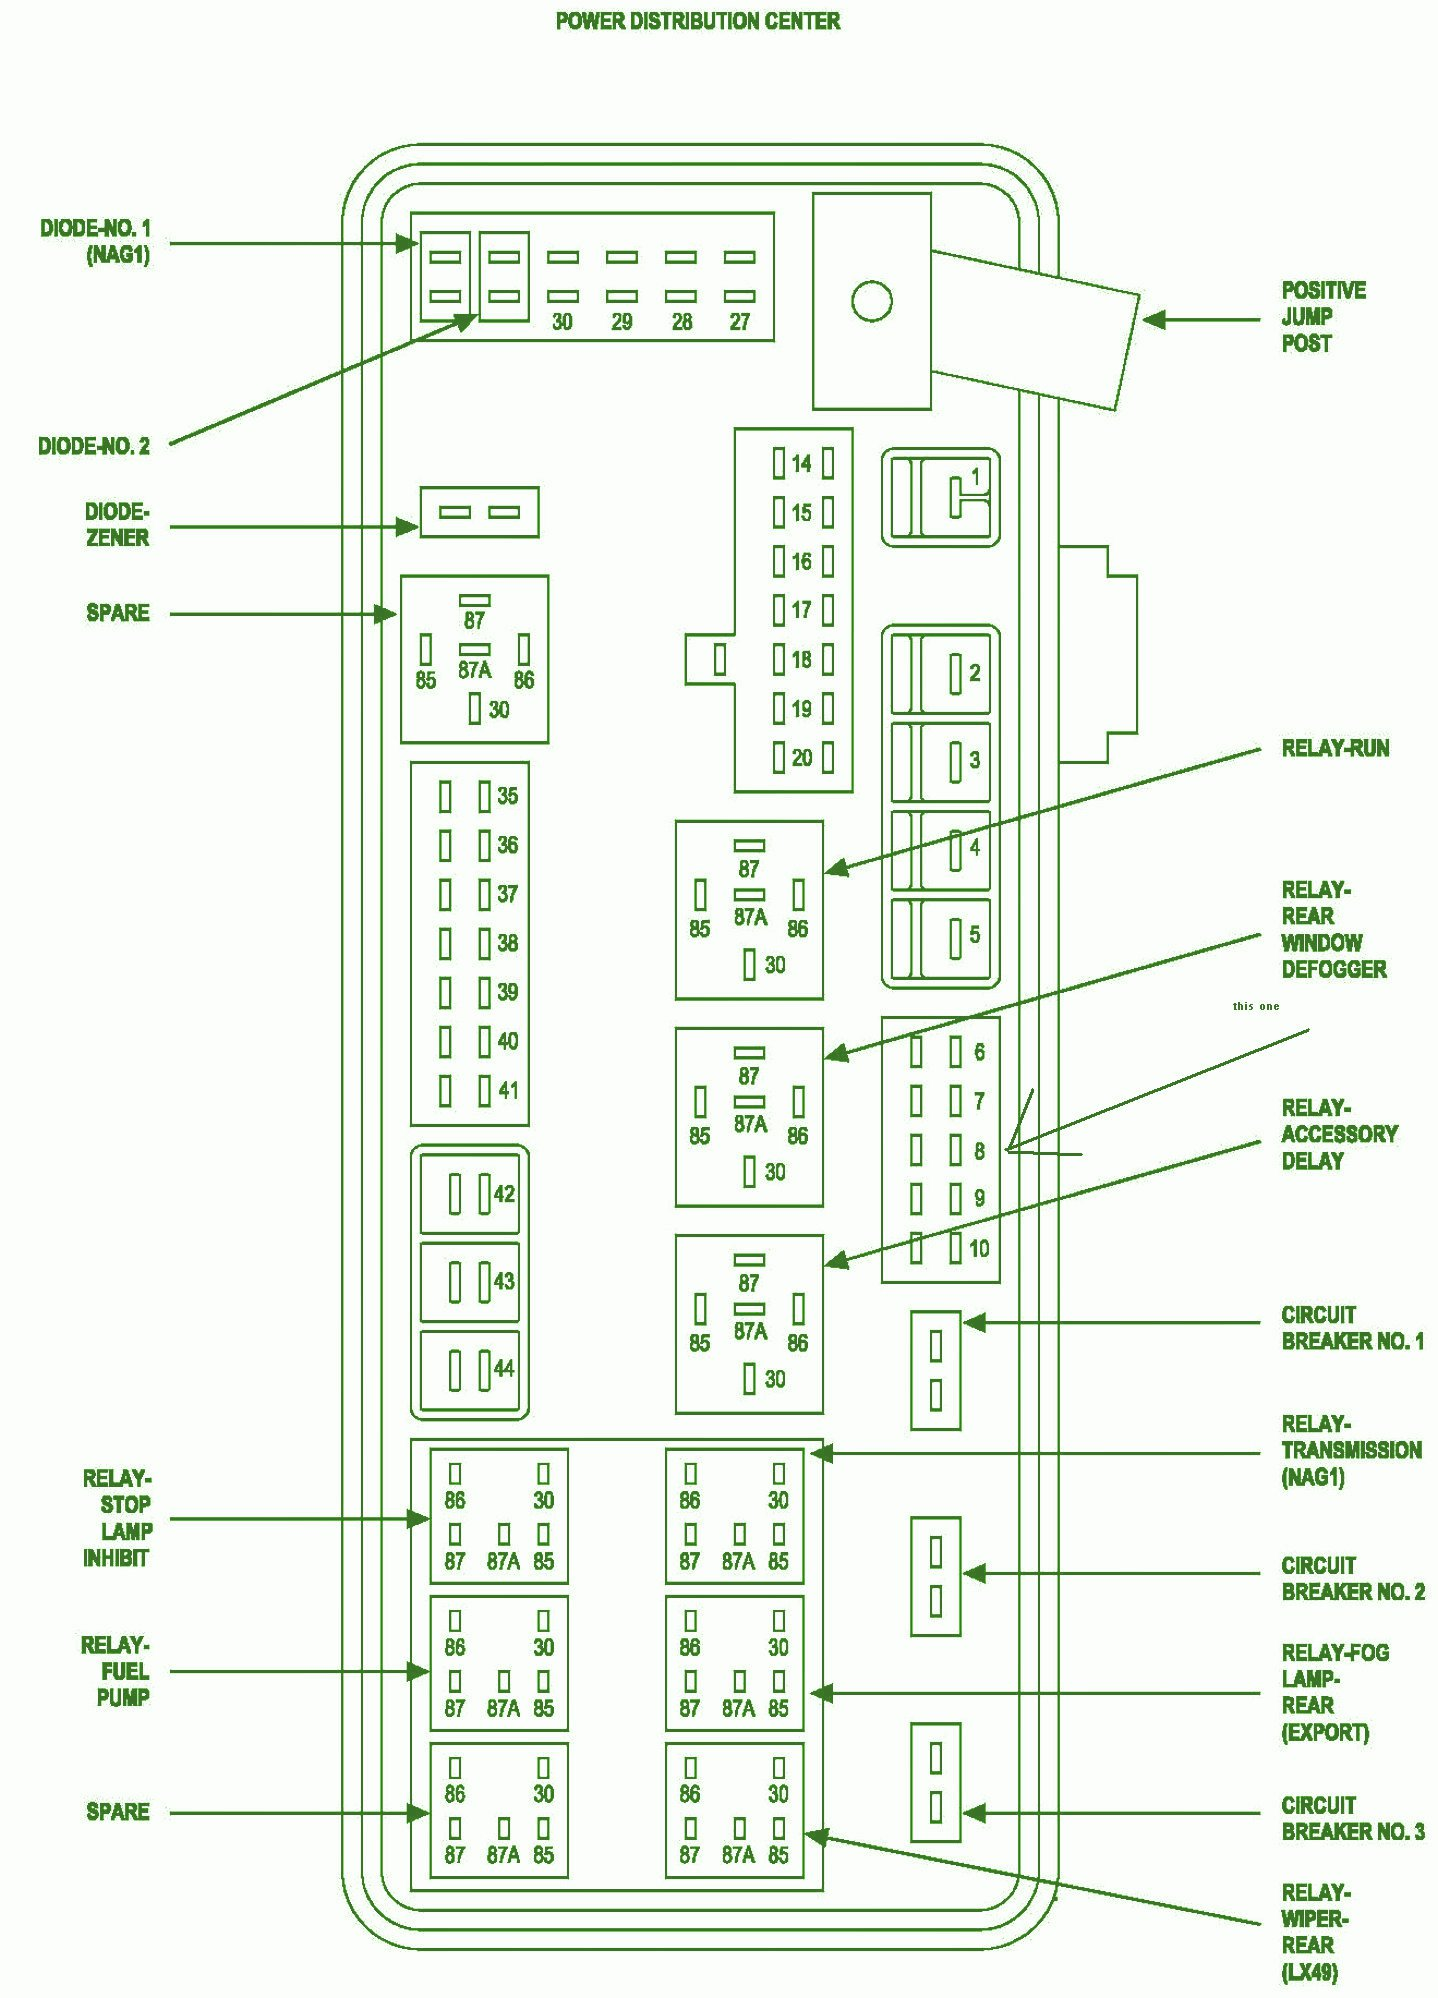 Fuse Box Diagram For 2007 Dodge Caliber Wiring Data 2008 Focus Schema Online